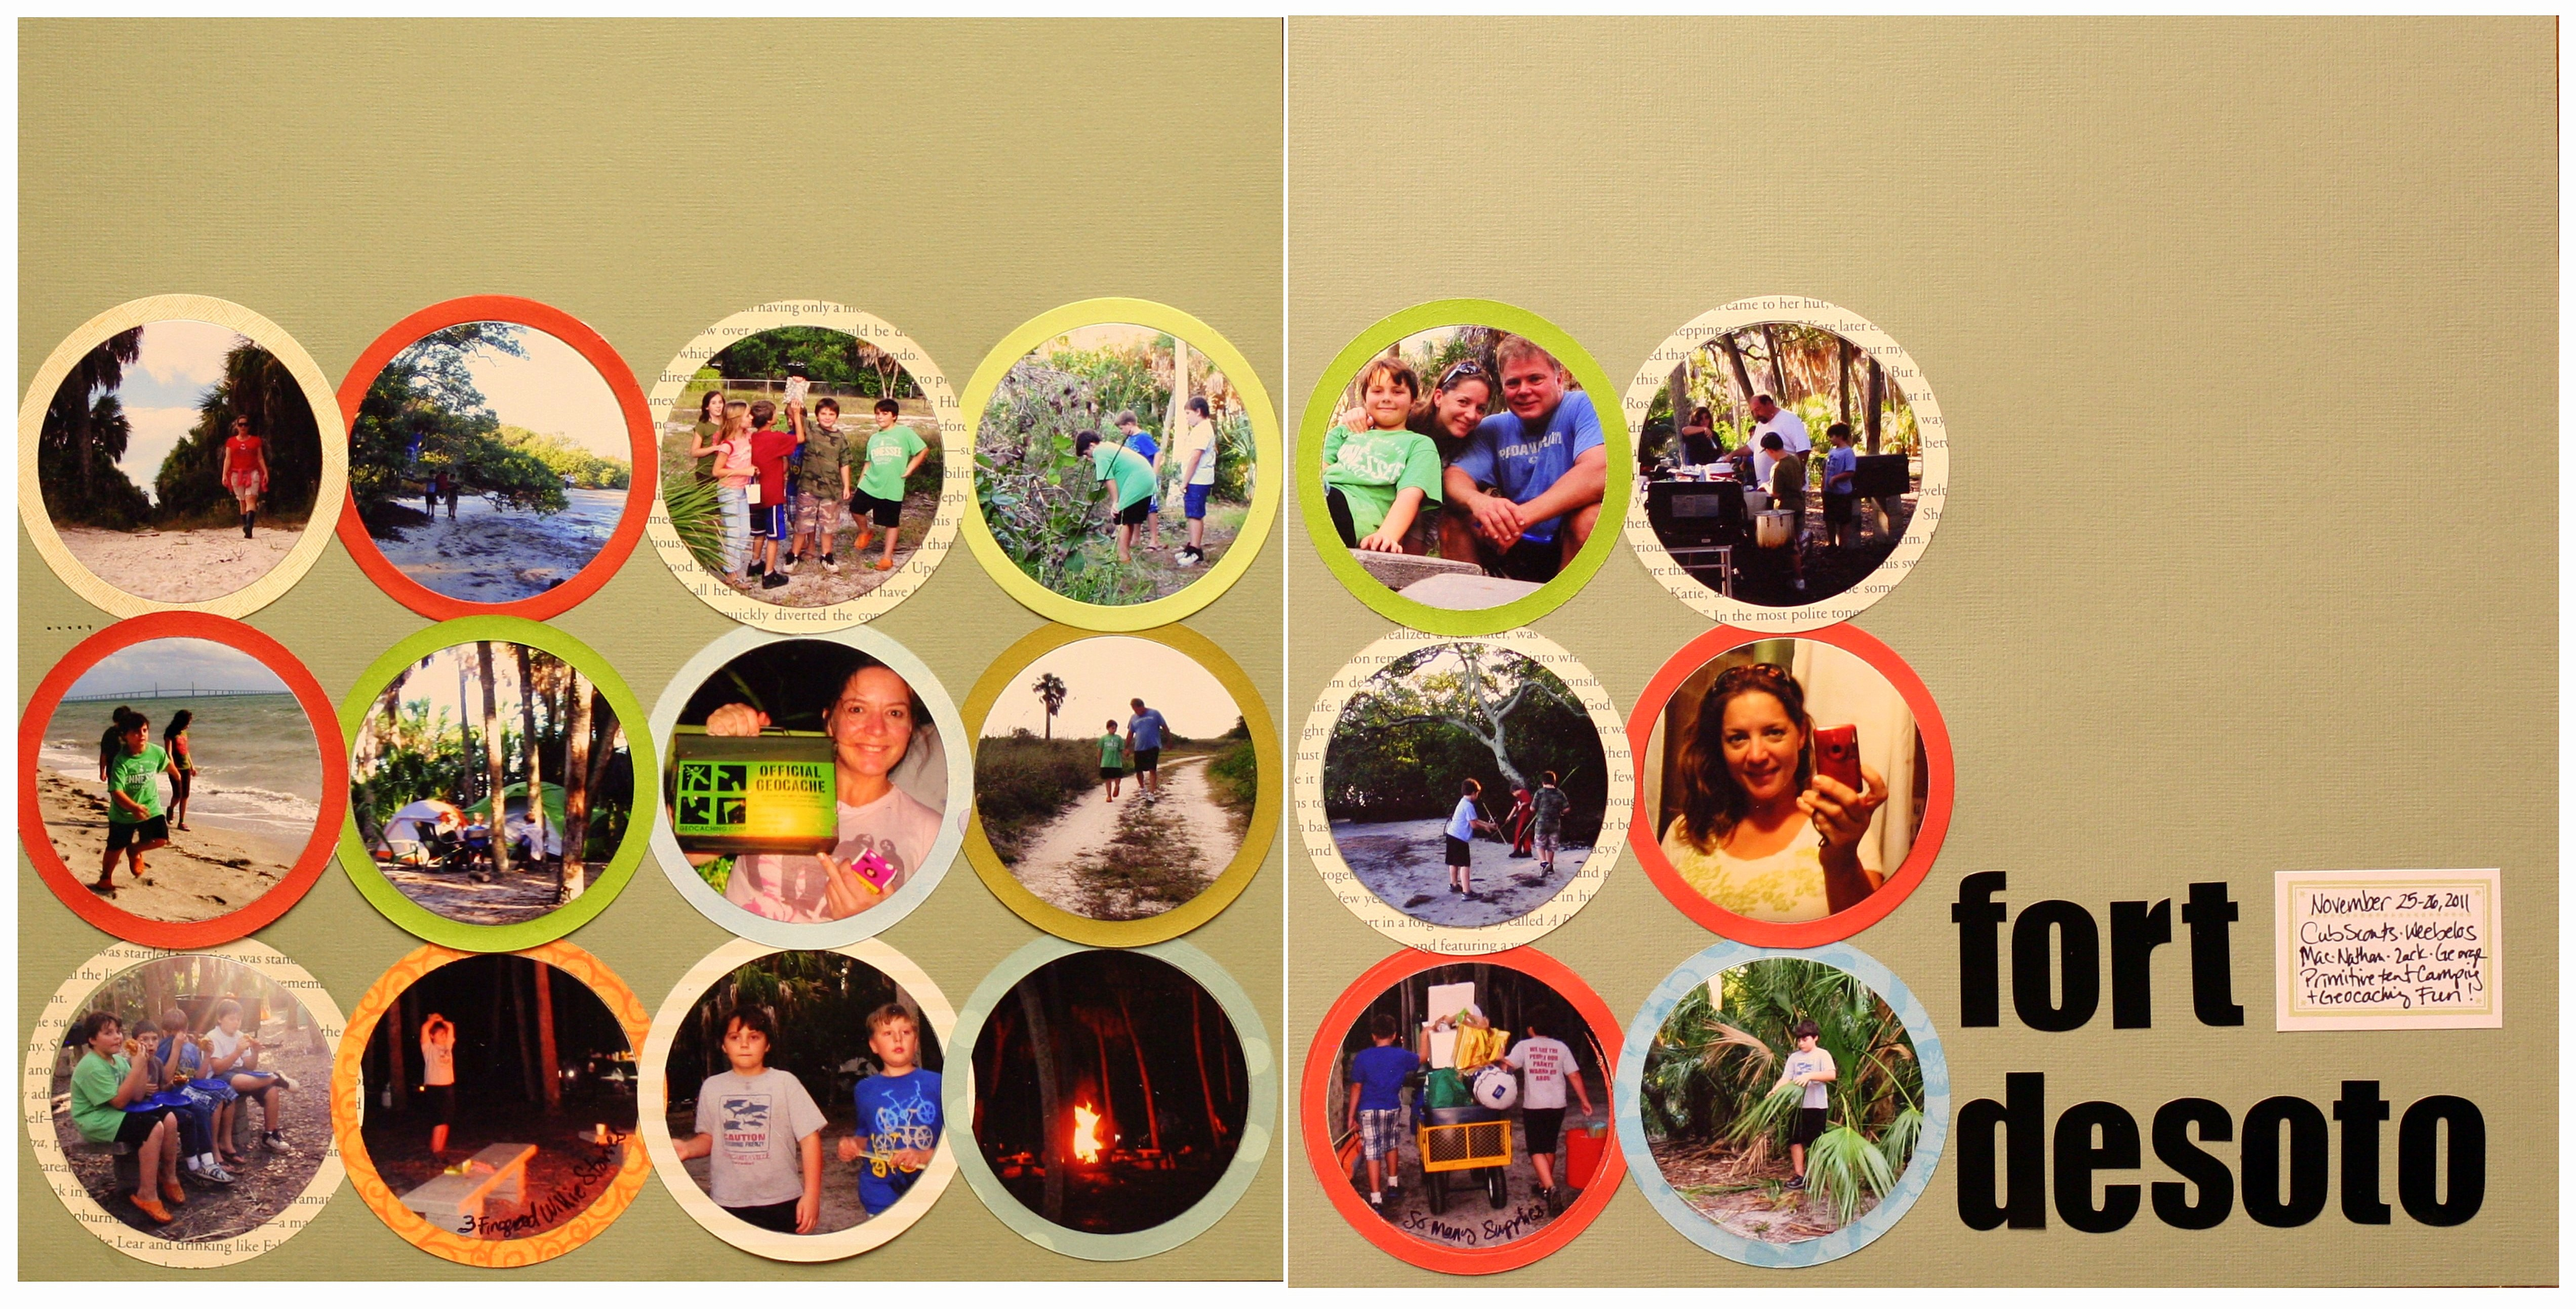 Scrapbook ideas goodbye - Cub Scout Camping Trip Two Page Scrapbook Layout With 18 Photos Using Circle Die Cutters